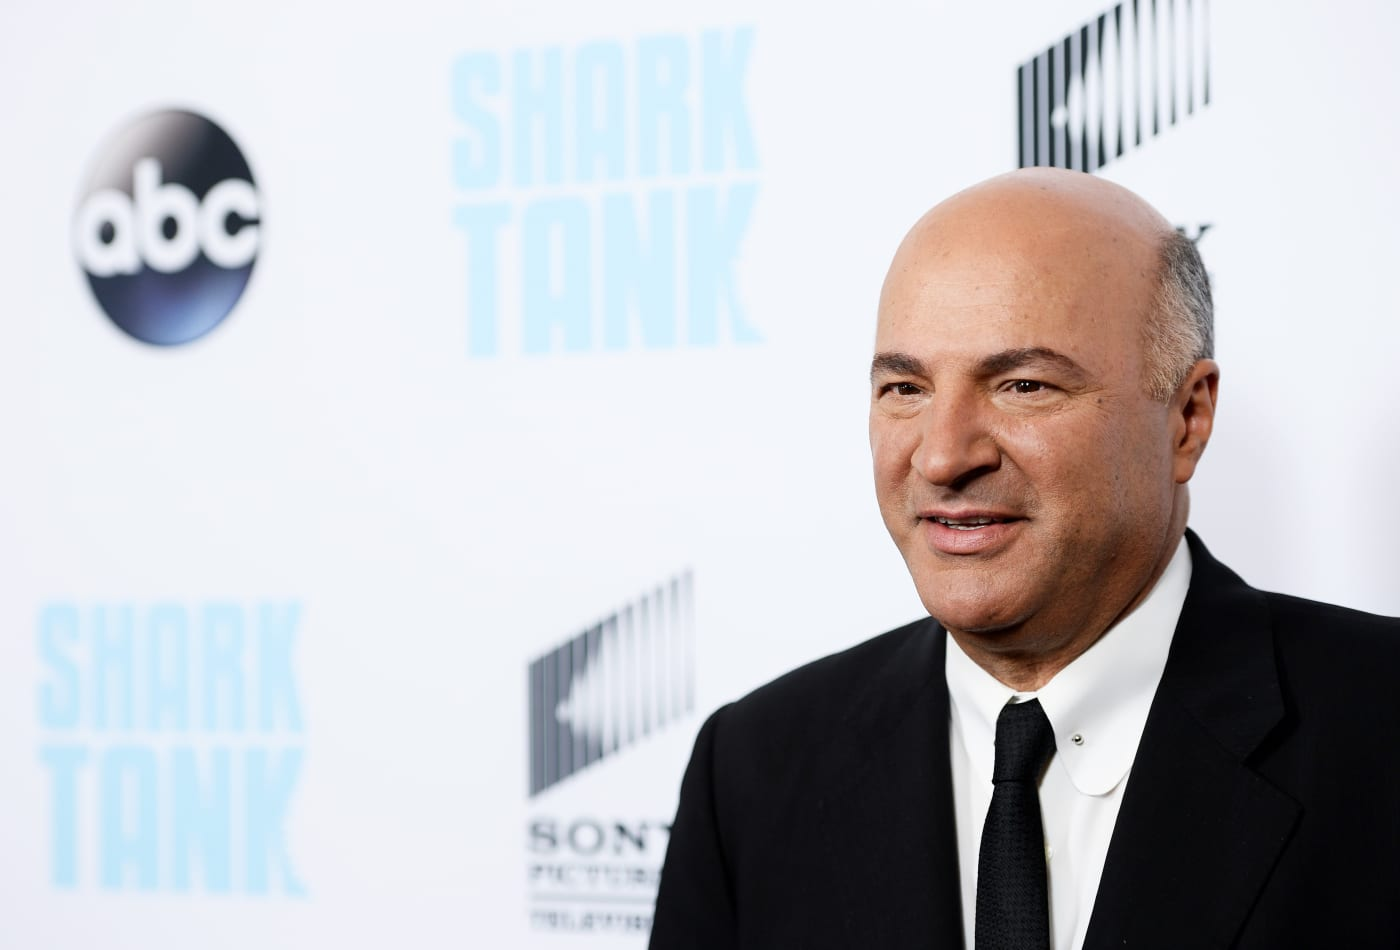 Kevin O'Leary: How to find your passion and turn it into a successful career